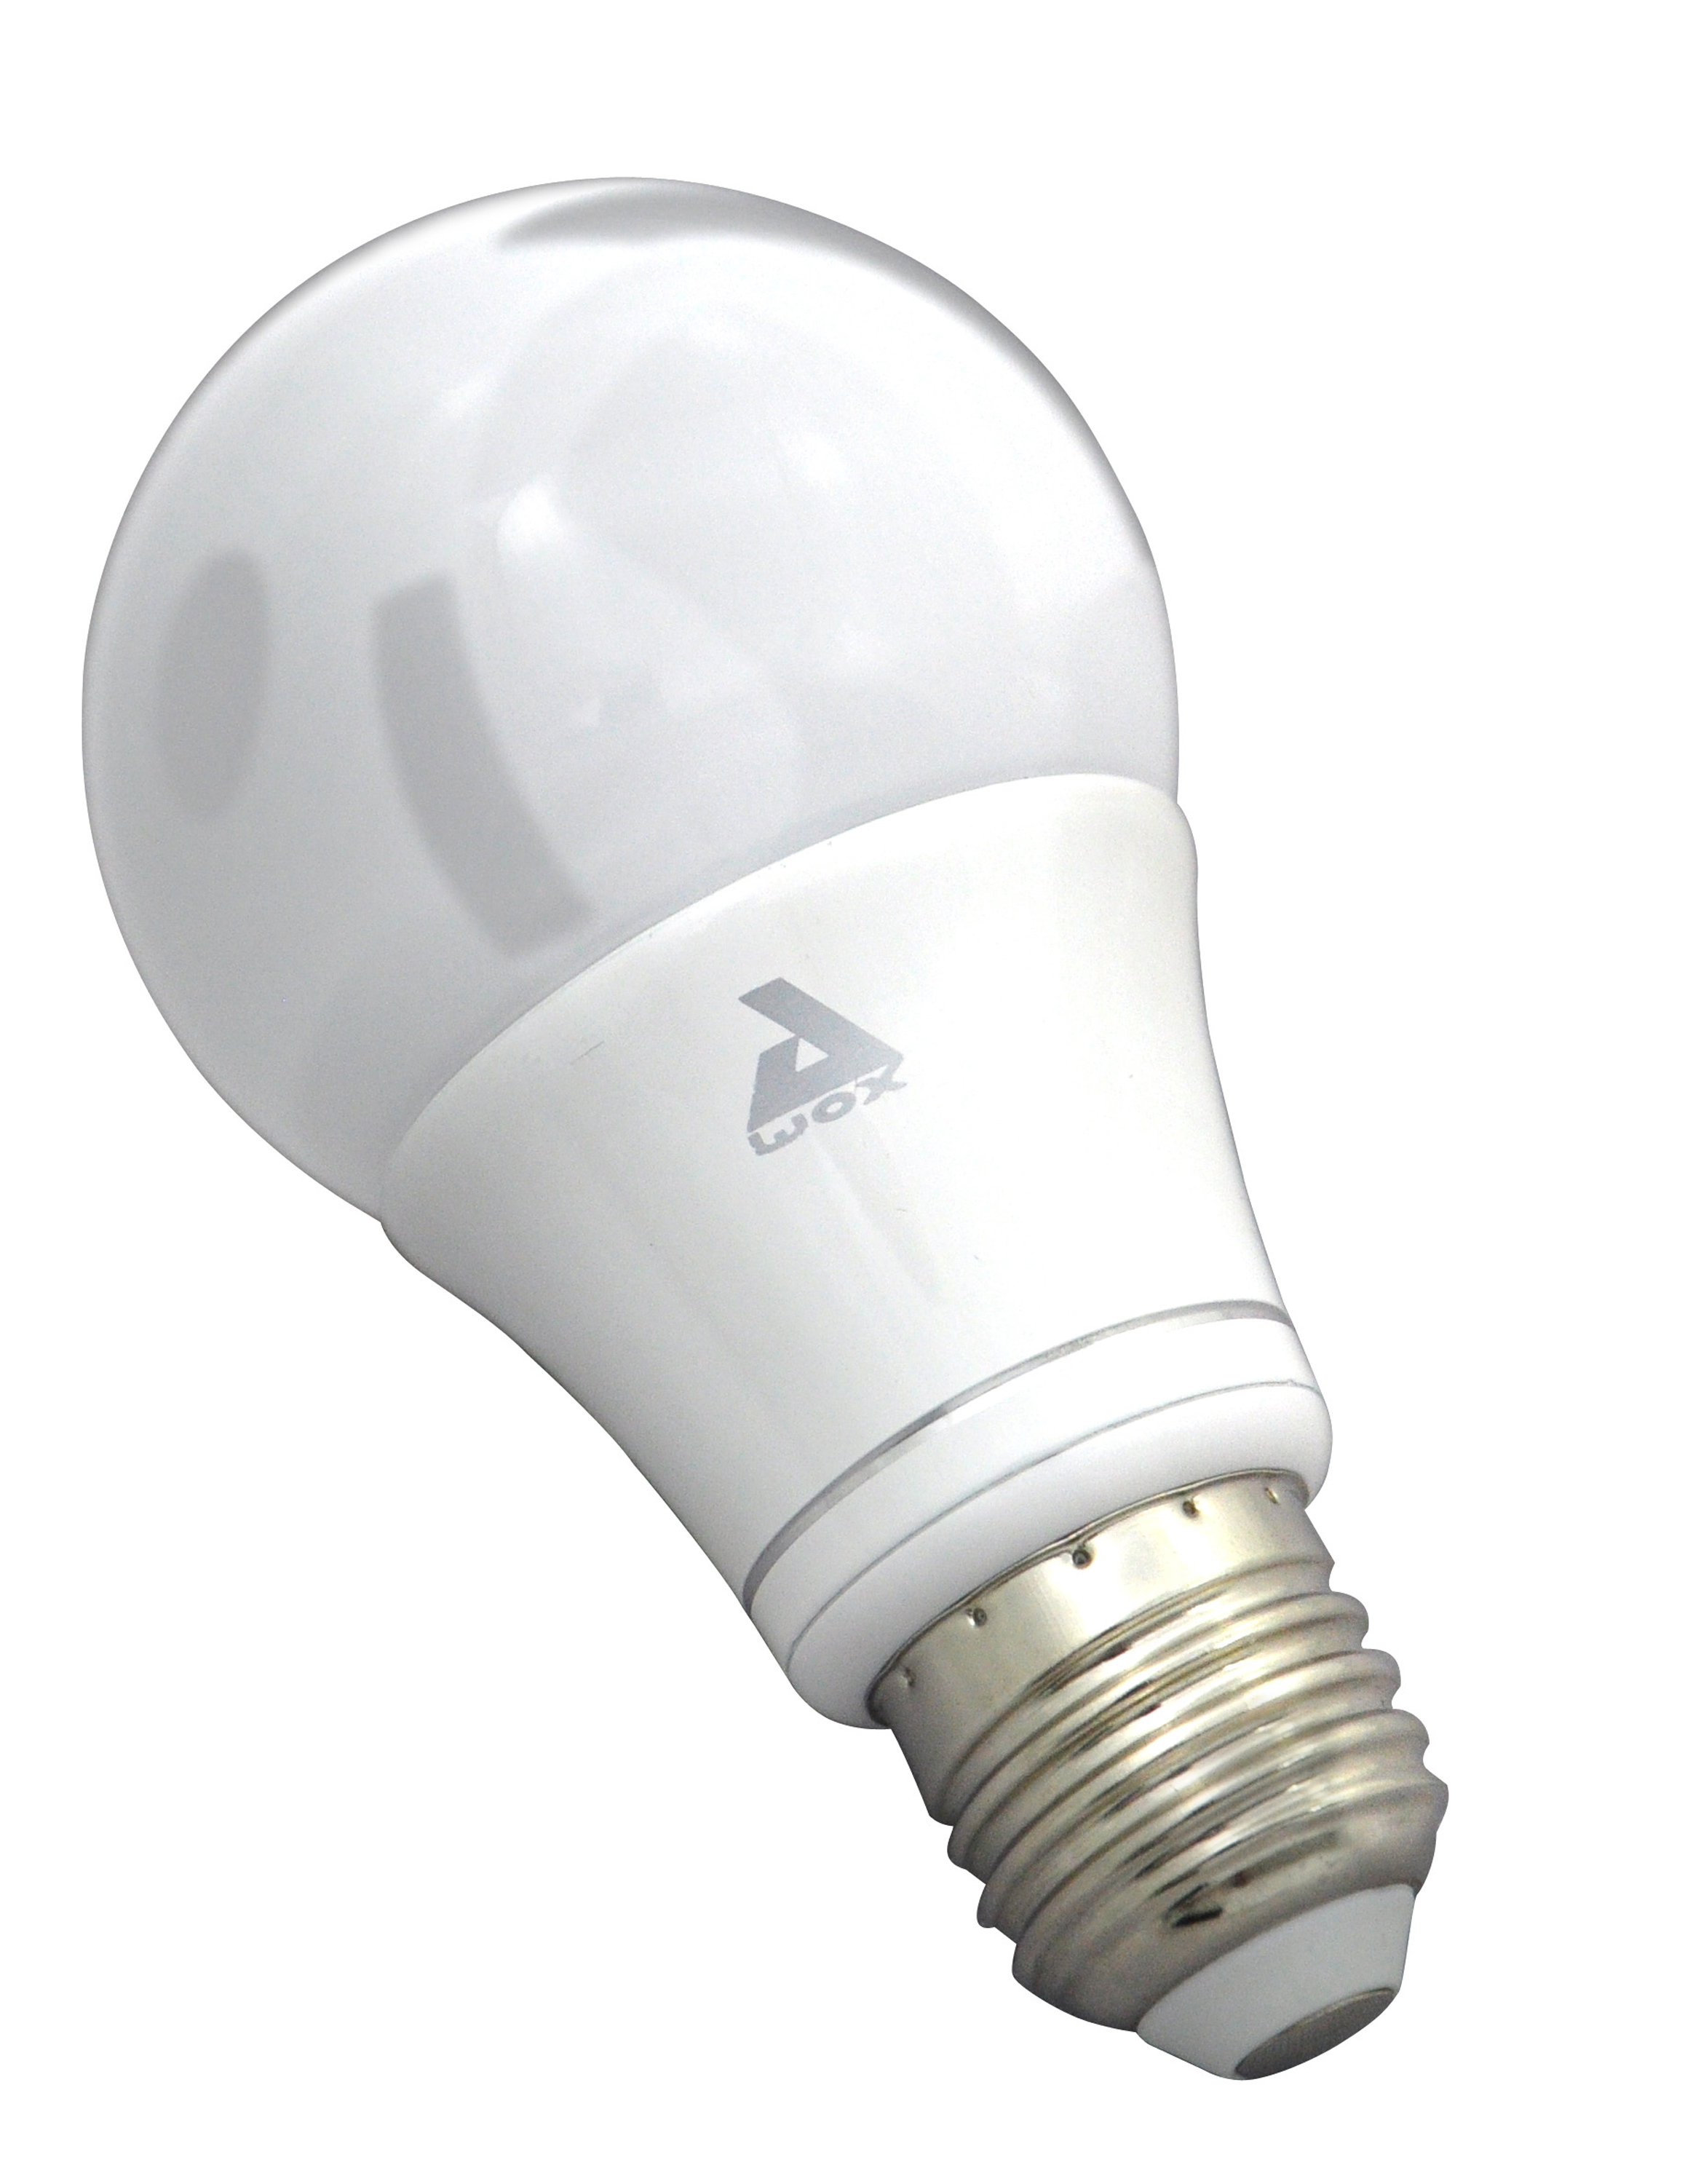 SML2-W9, LED 9W E27, BT control, white